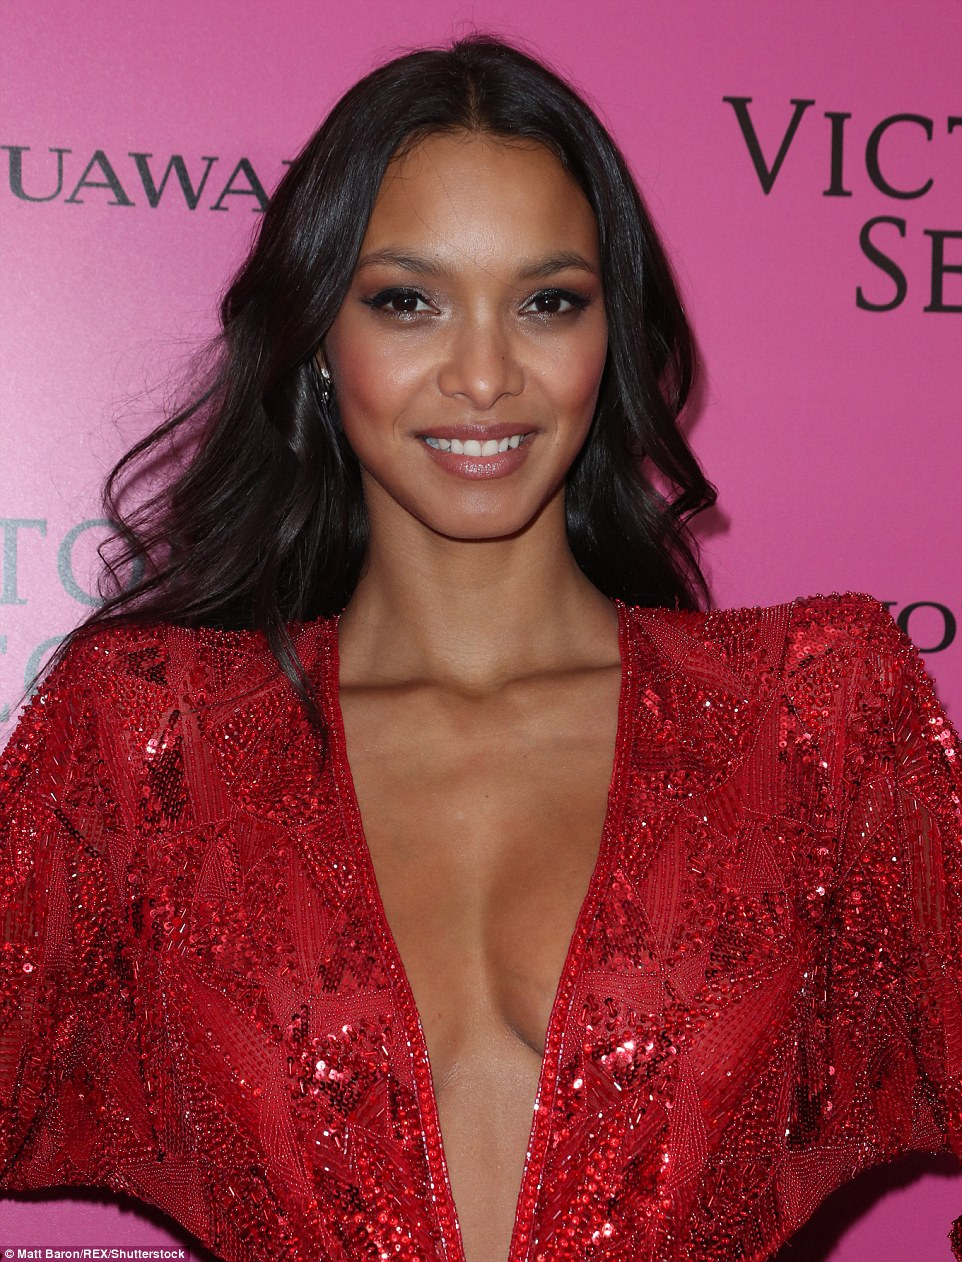 Plunging: Lais flashed her cleavage in the sparkling scarlet beaded dress as she shot the camera a winning smile